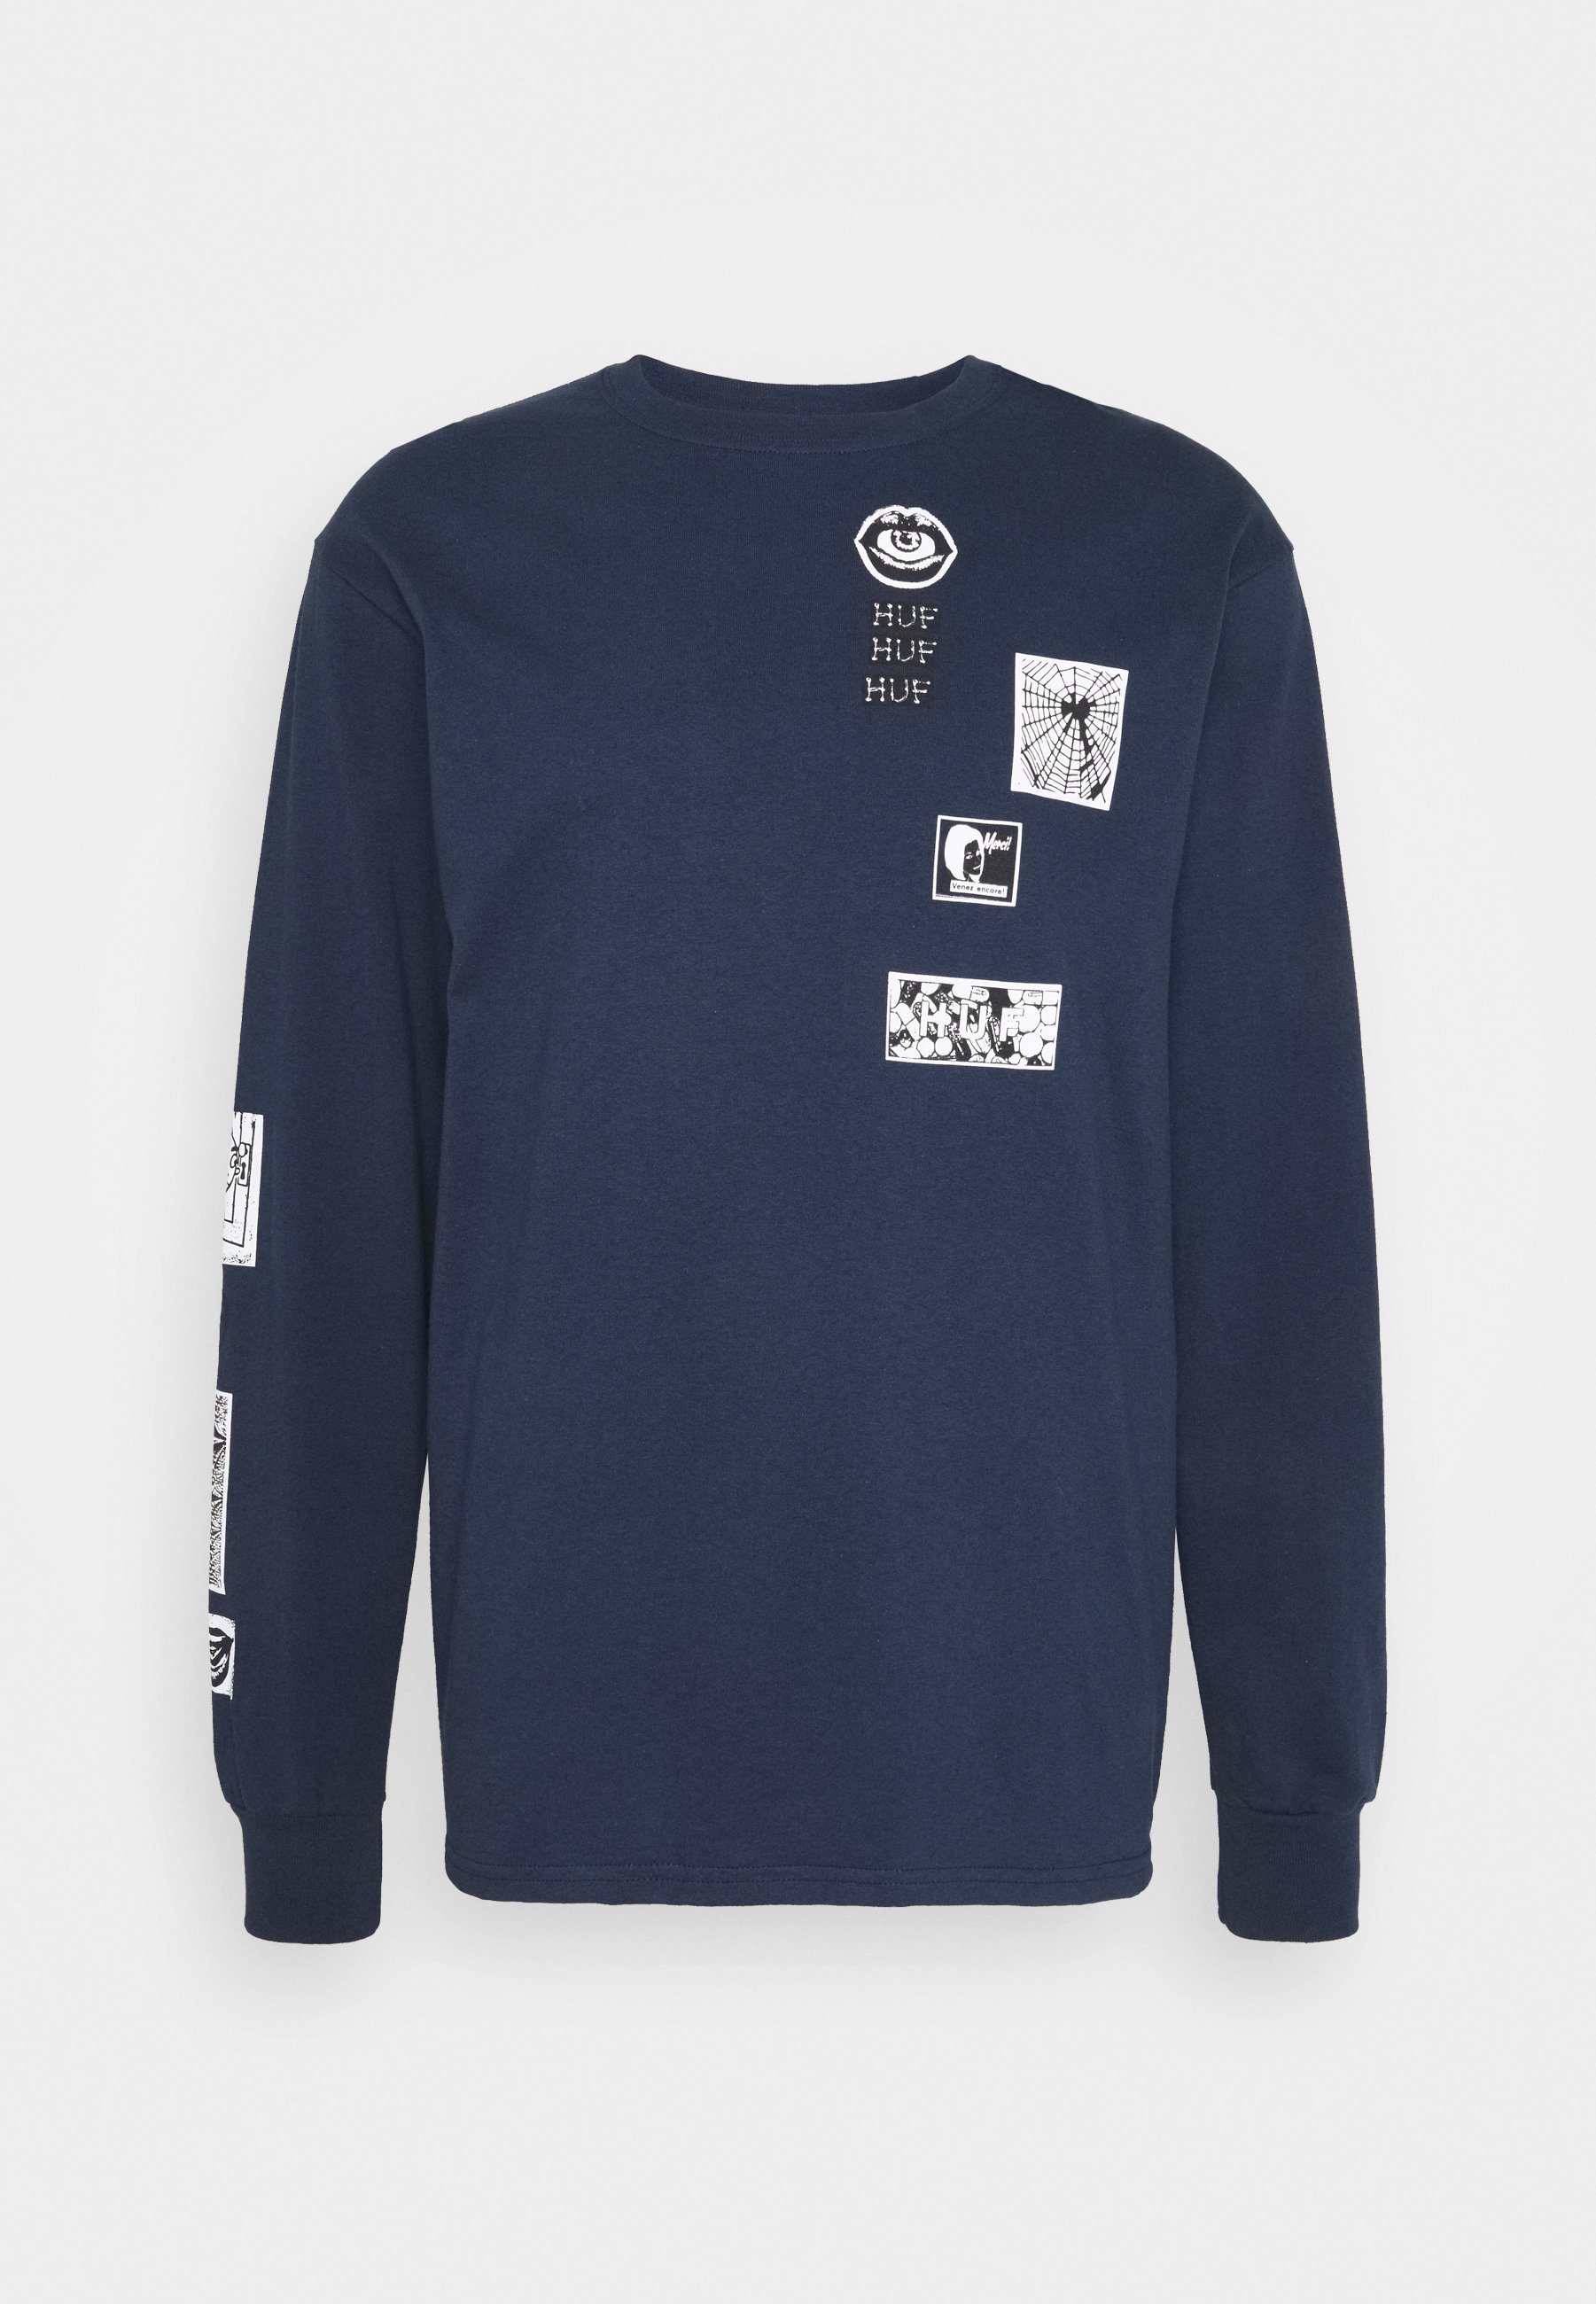 Stieglitz WORLD TOUR Sweater rose Zalando.nl